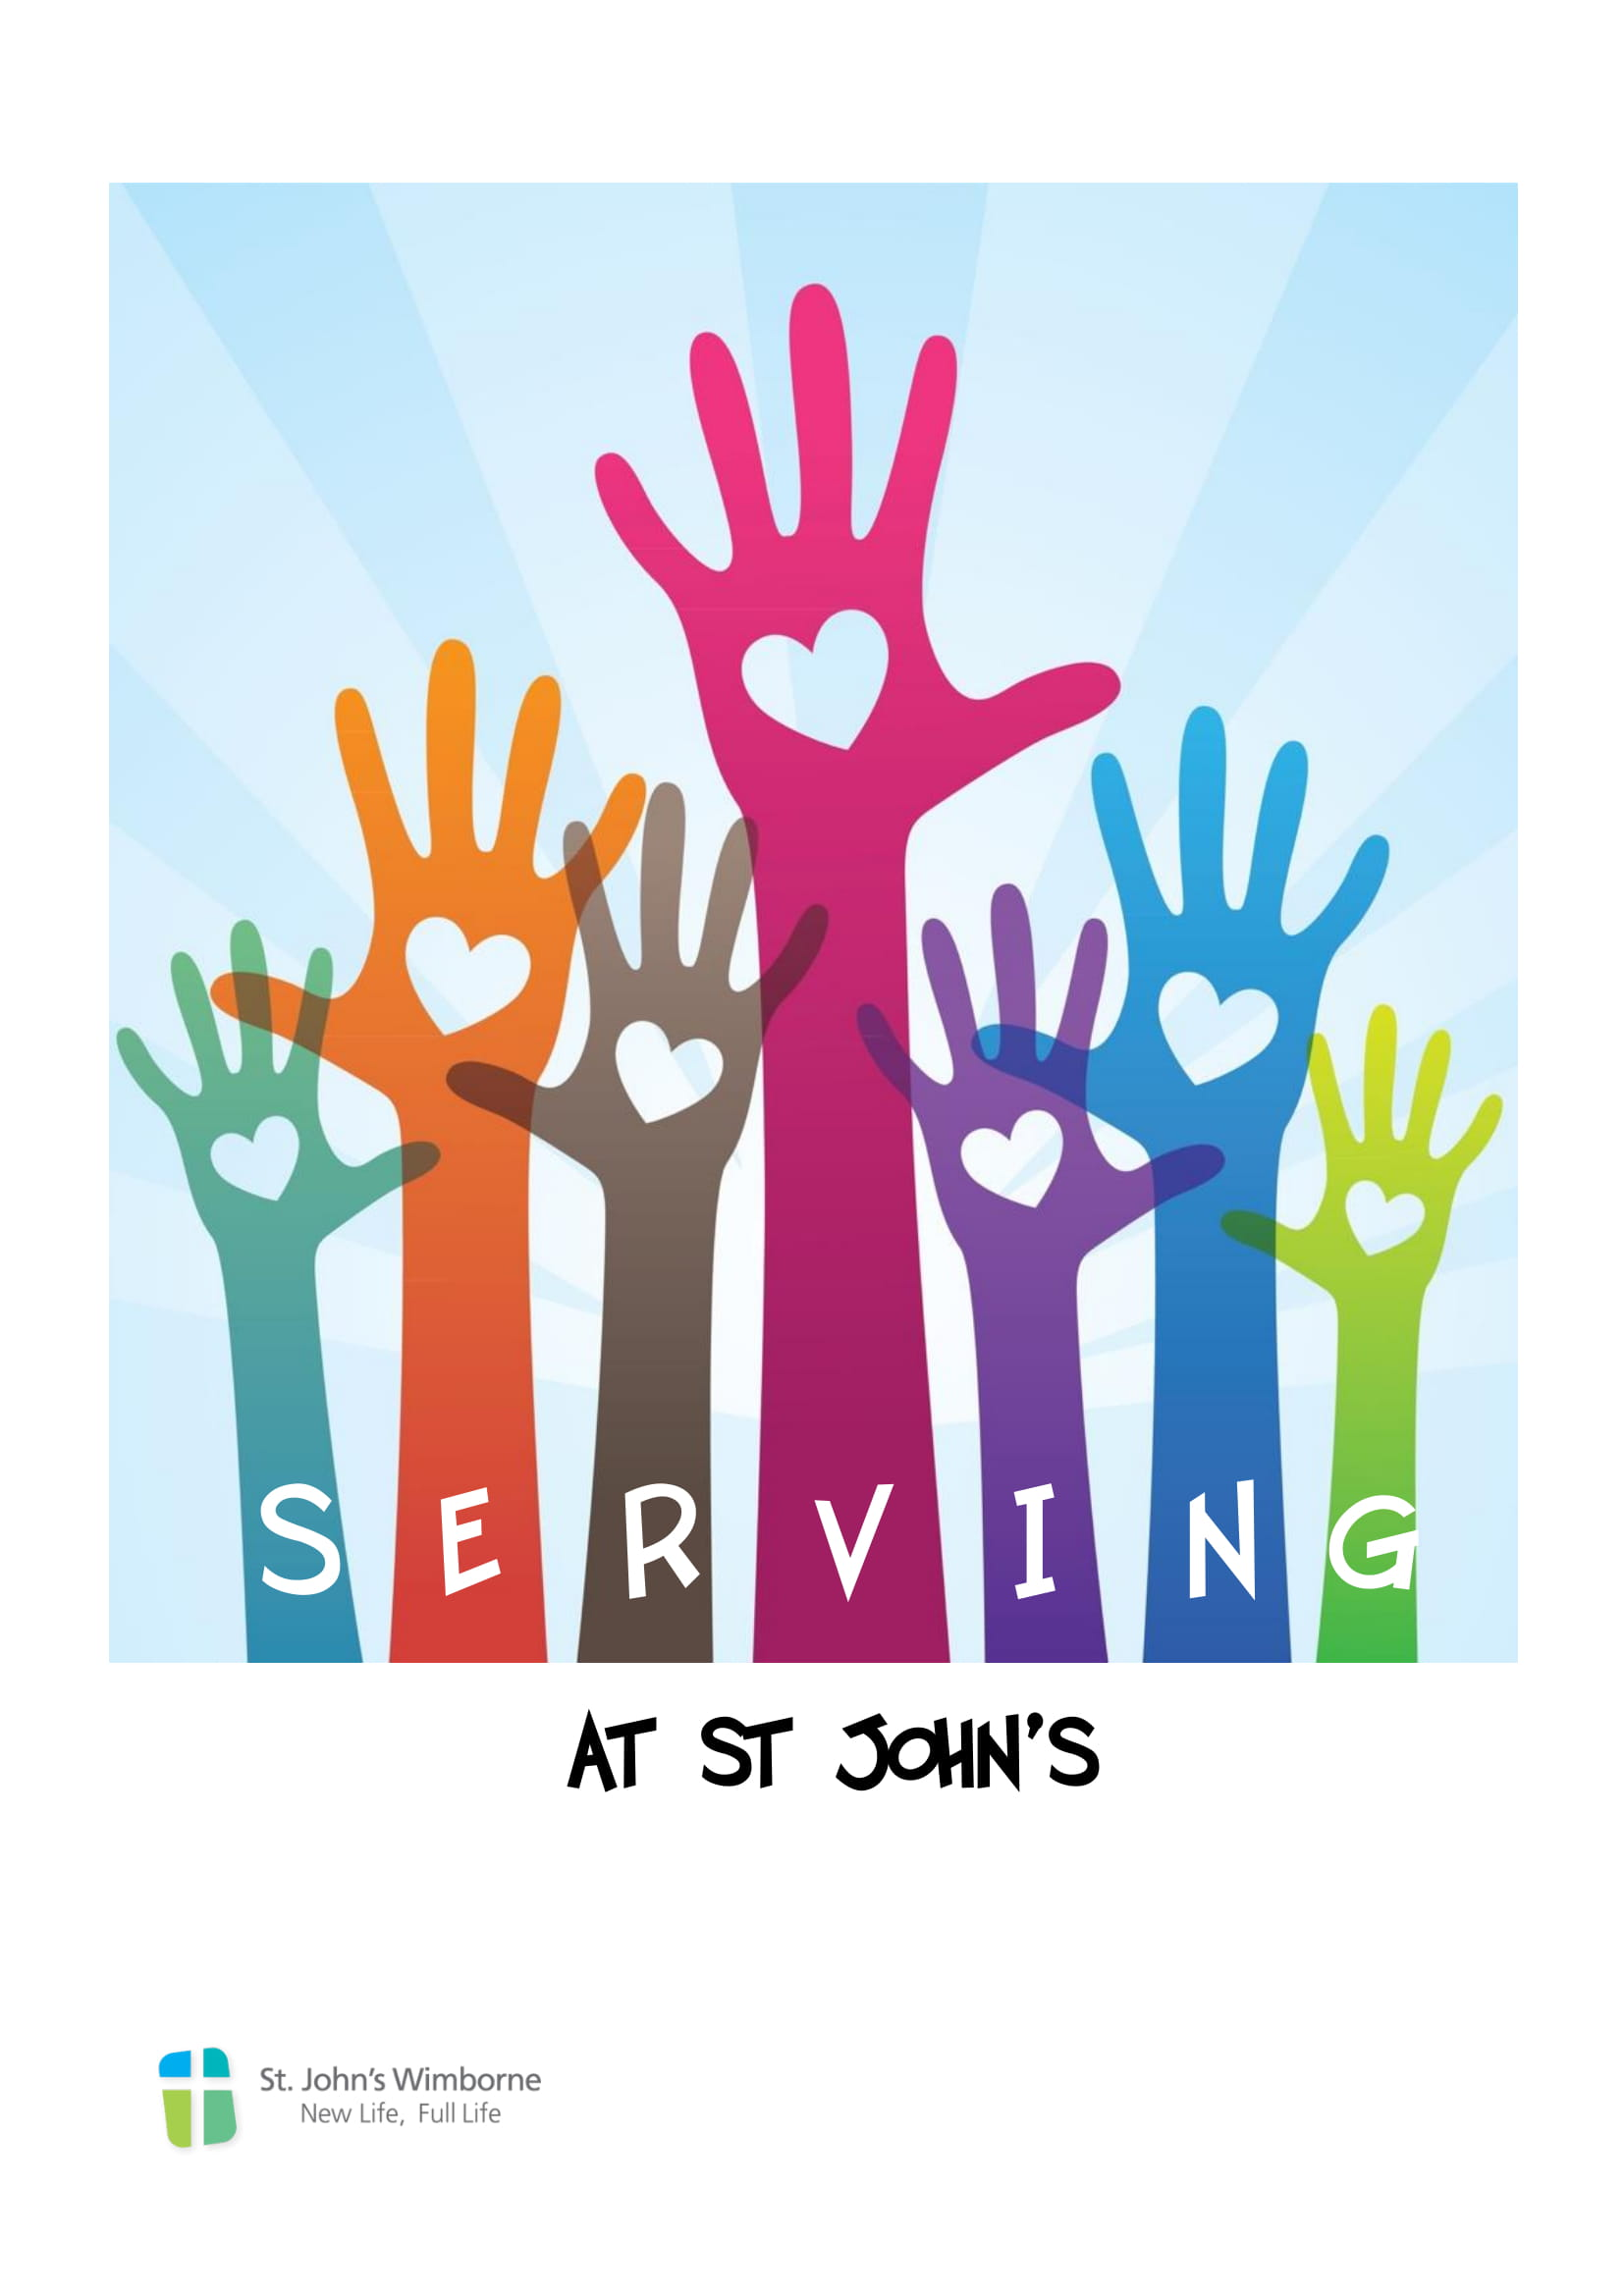 Serving at St John's Leaflet 2019 pdf icon